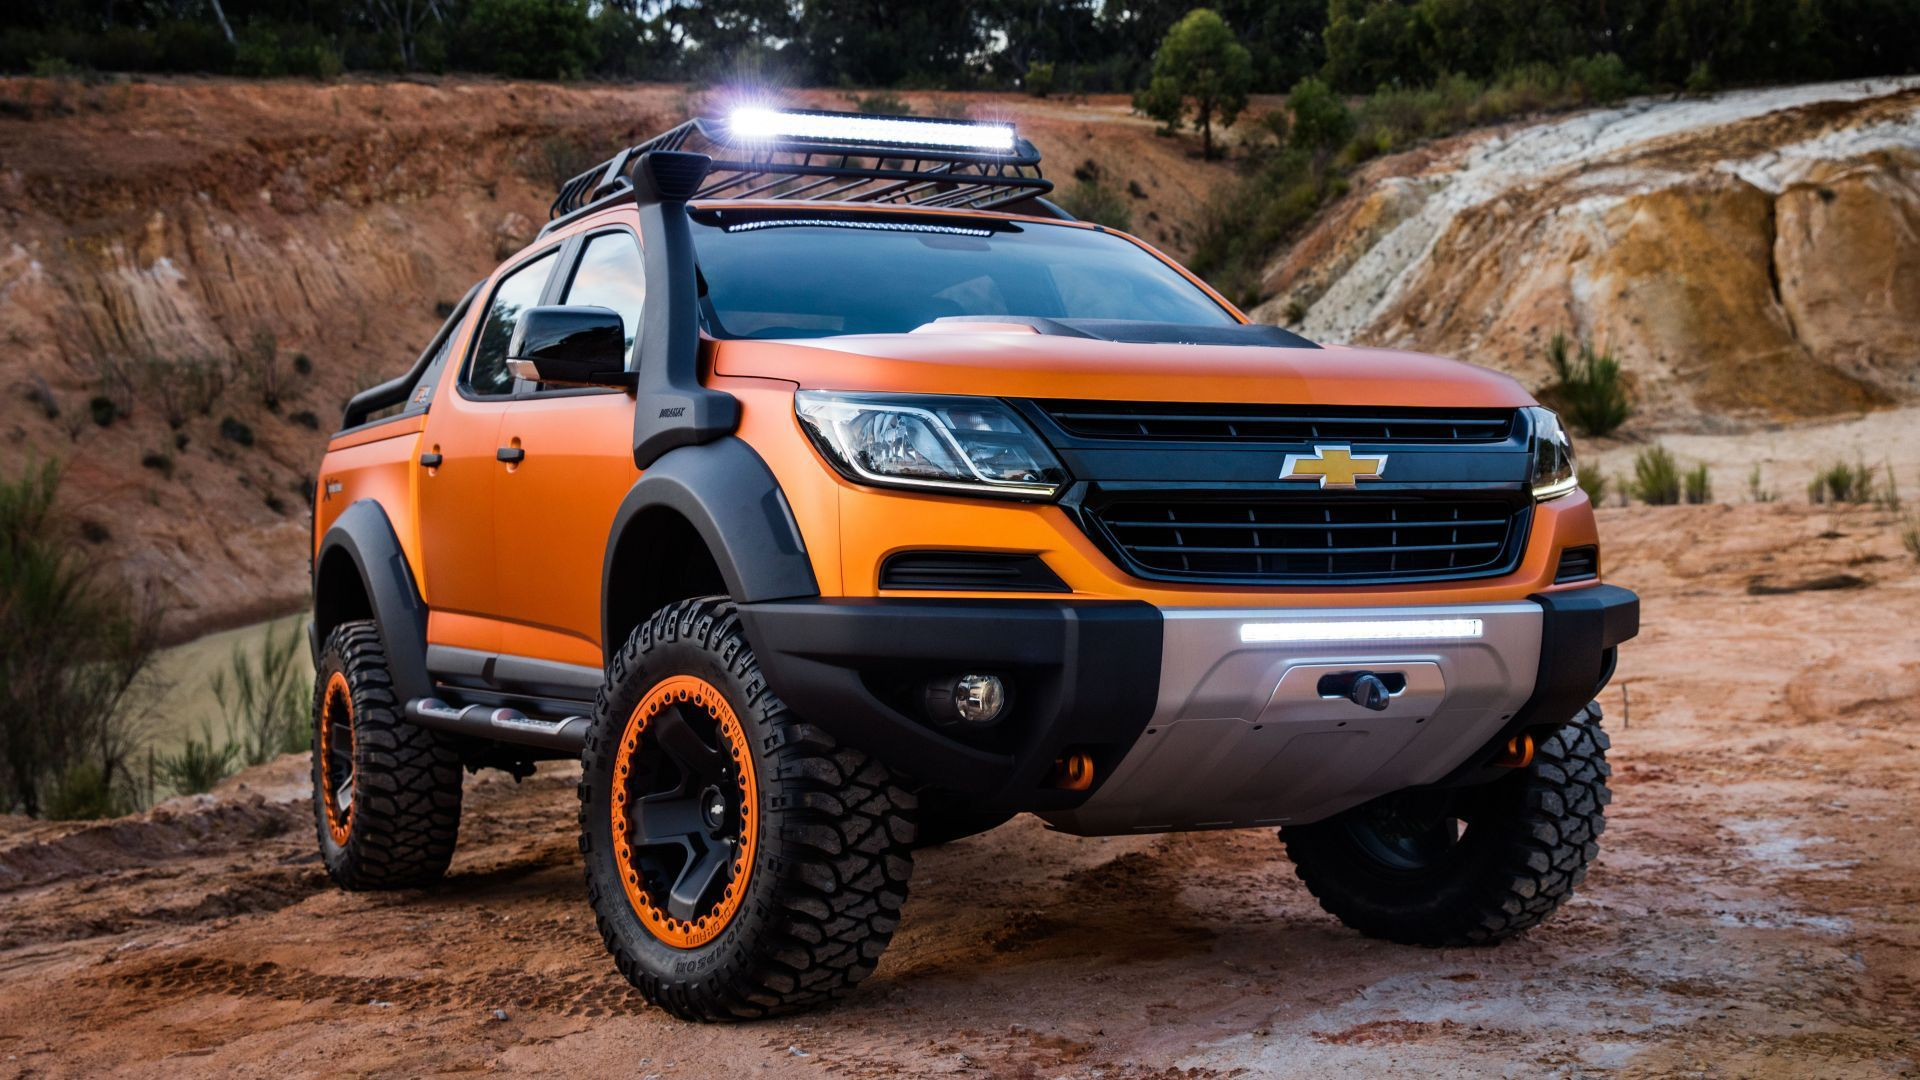 2019 Chevy Colorado Zr2 Release Date 2019 Chevy Colorado Zr2 Is